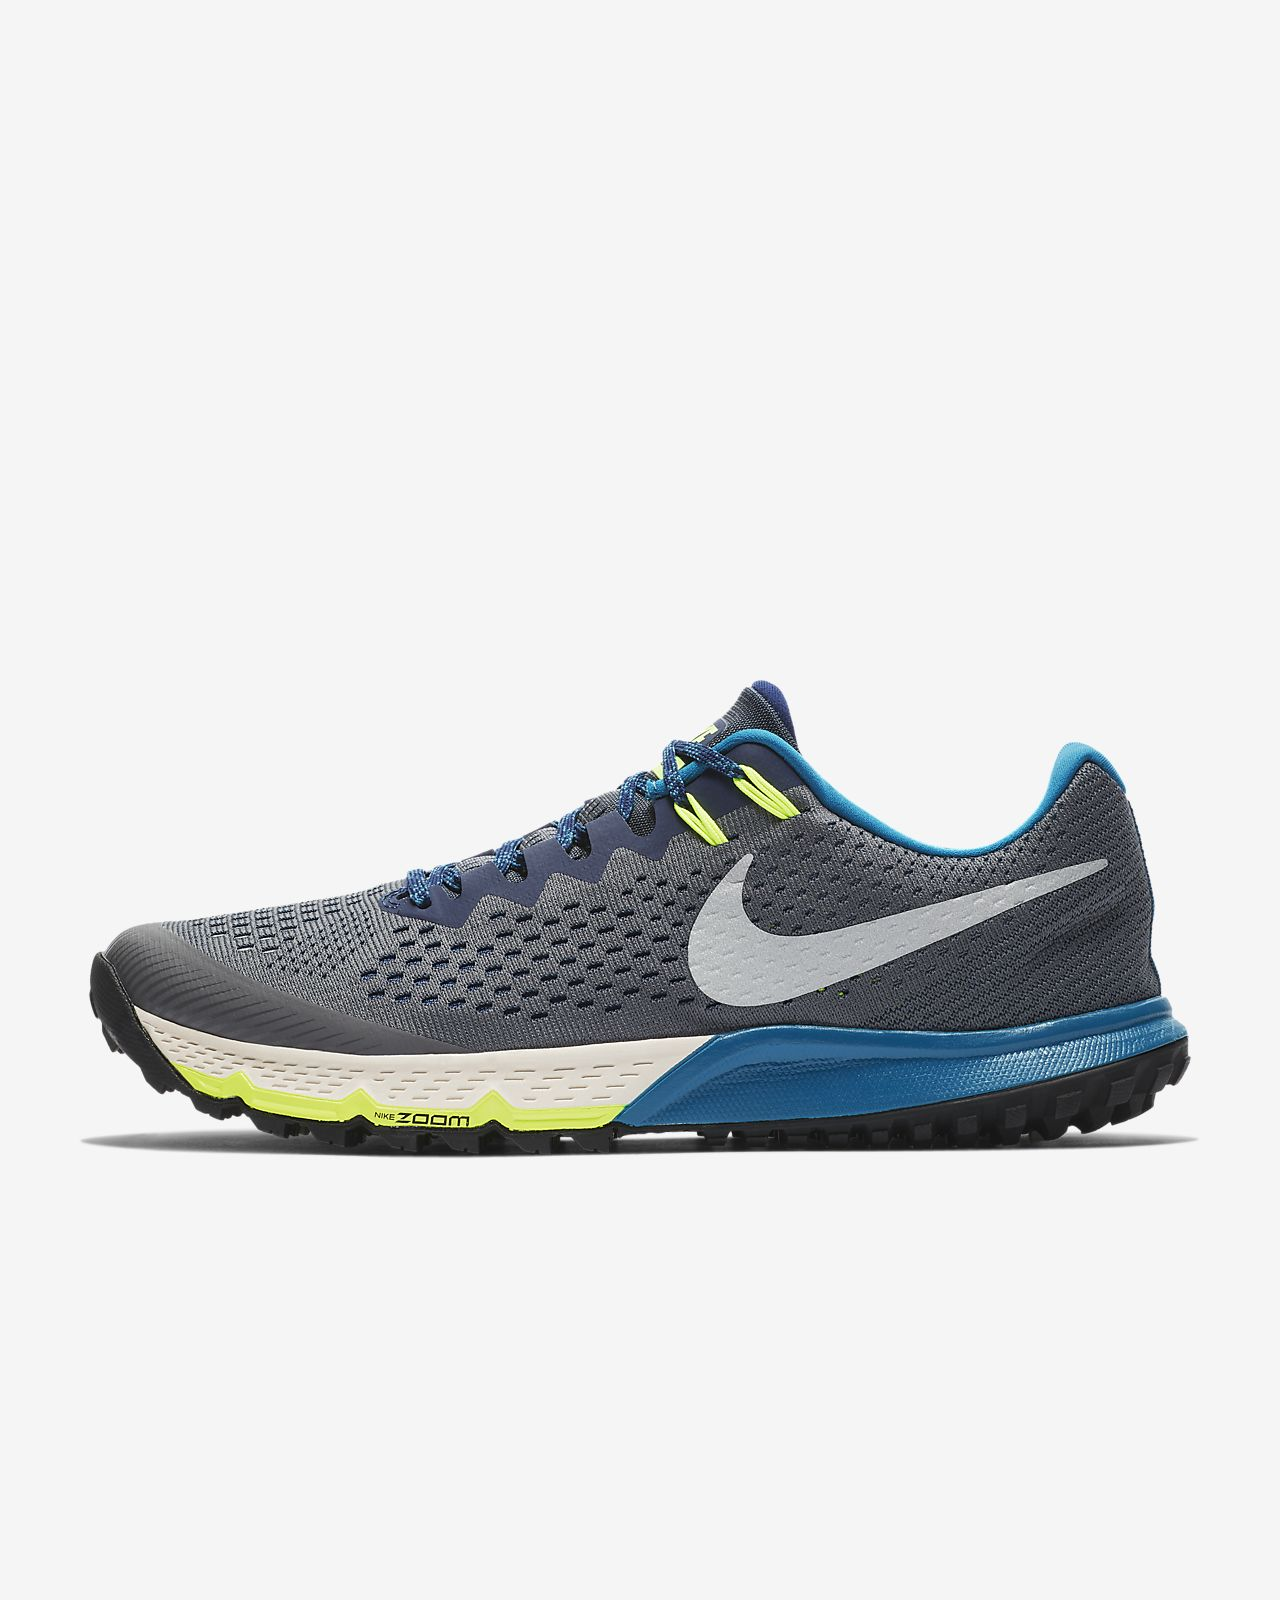 info for f2bb4 7c621 ... Scarpa da running Nike Air Zoom Terra Kiger 4 - Uomo